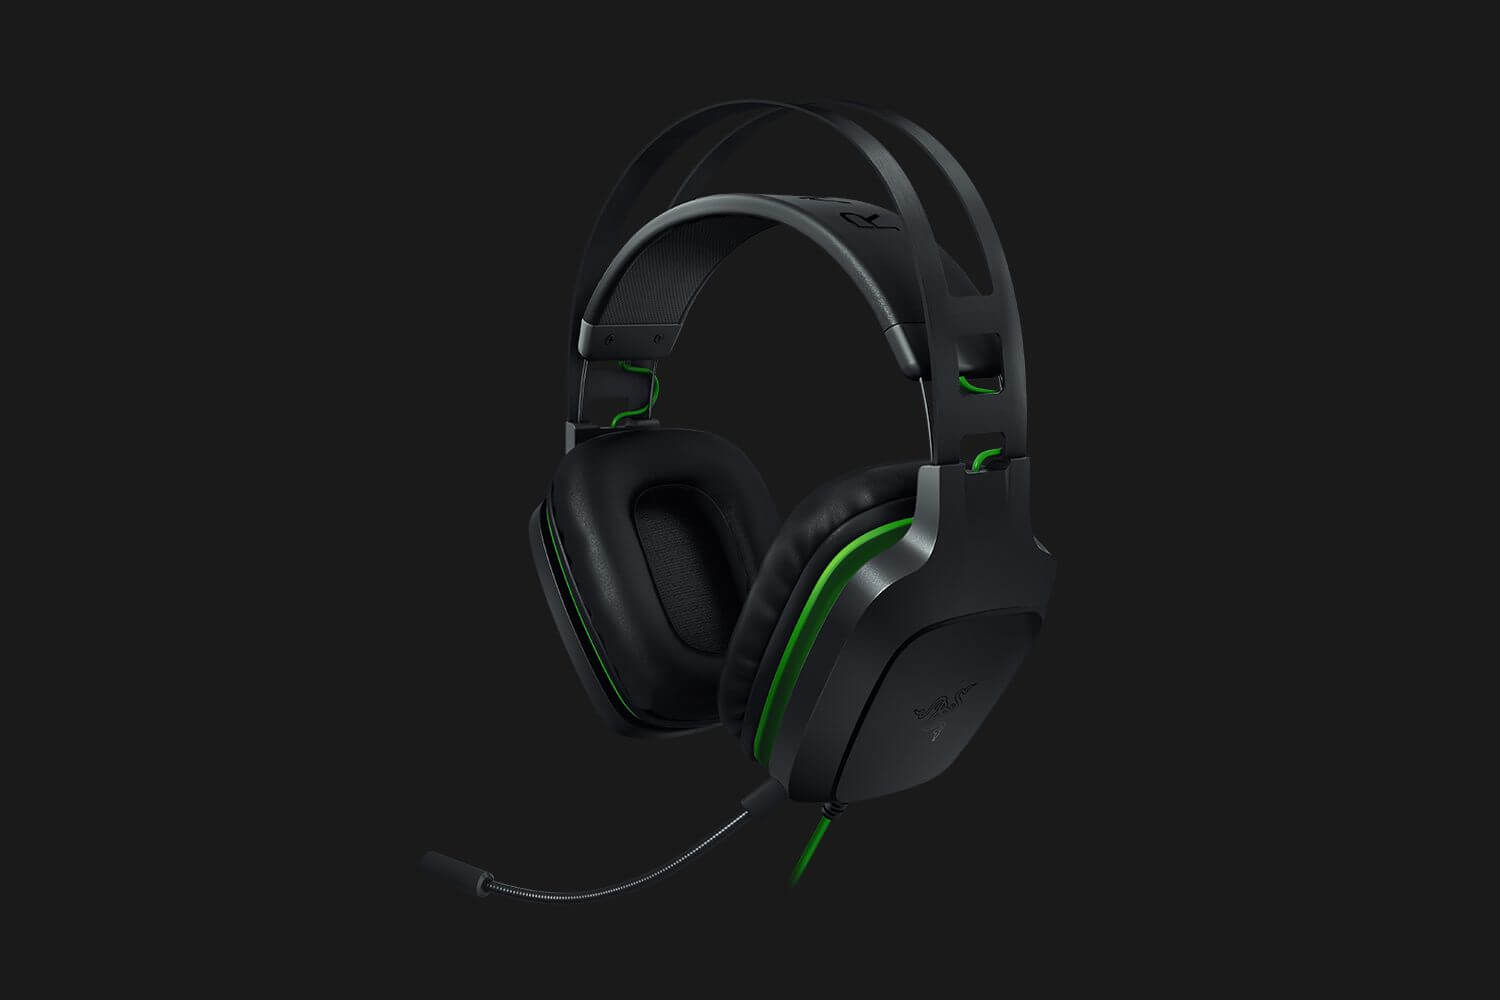 900a3a65d0e Razer Electra V2 Review | Trusted Reviews